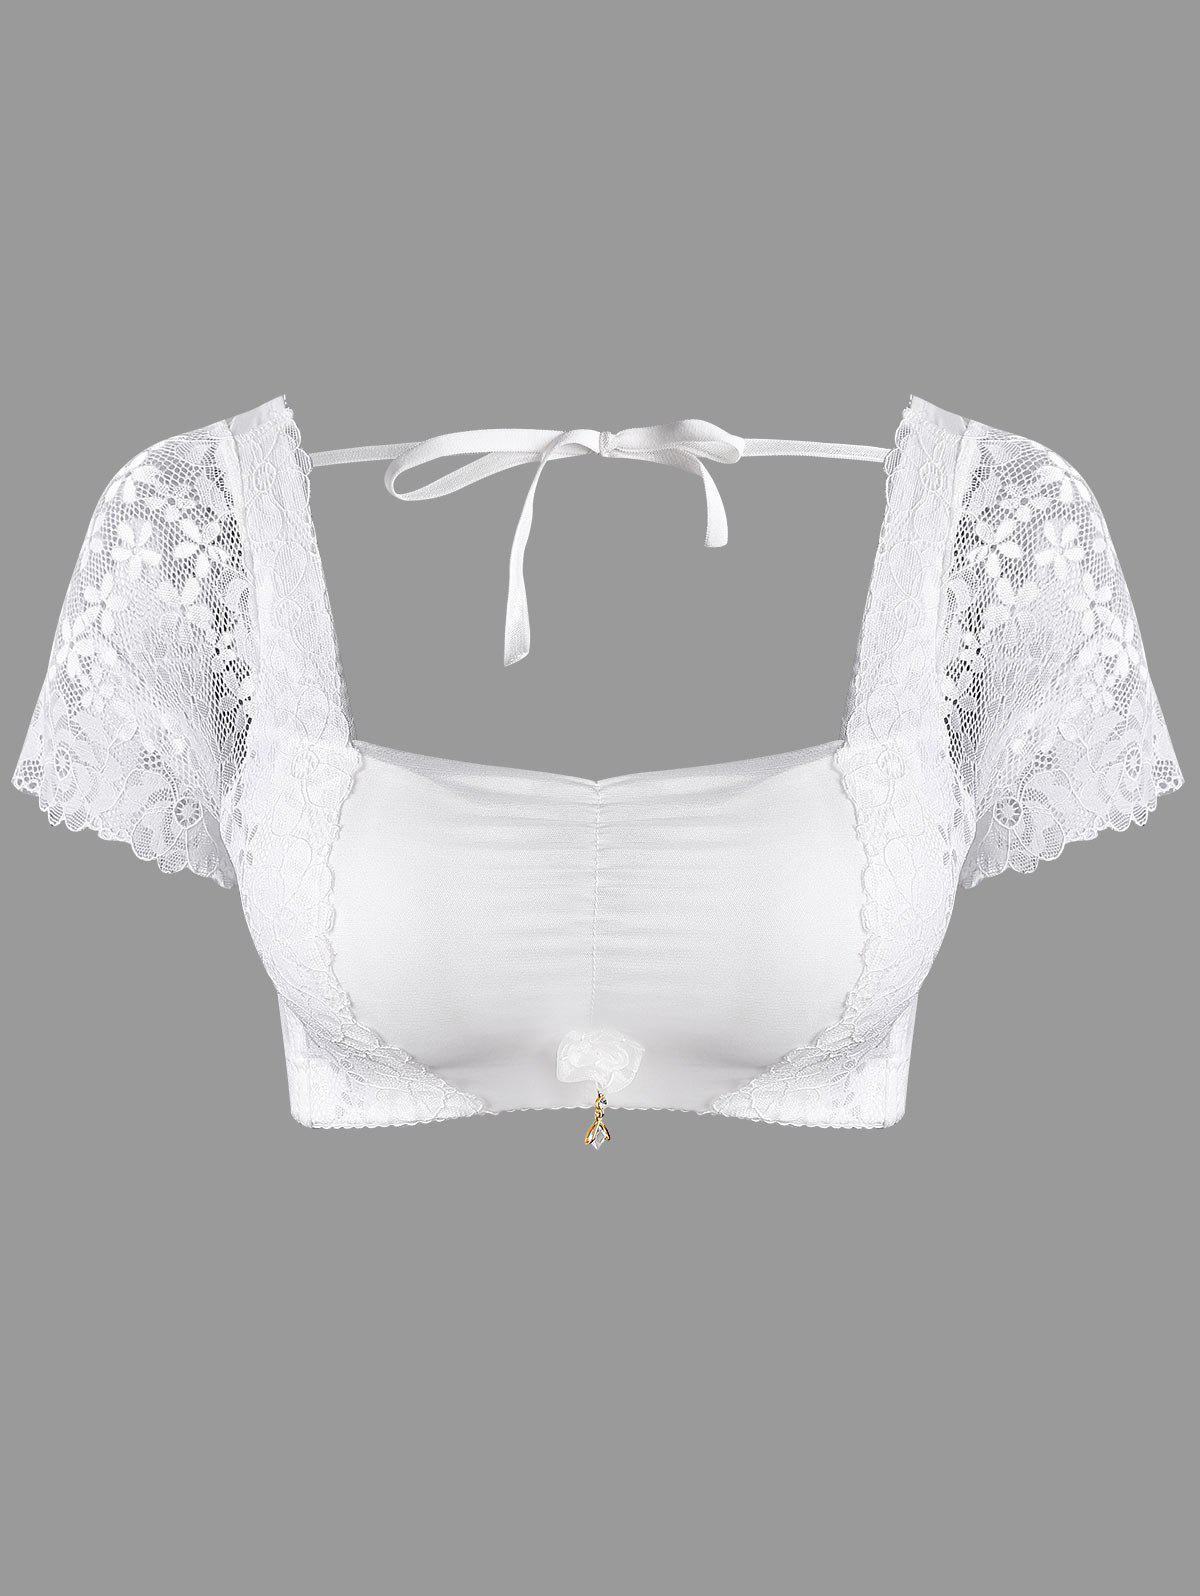 Halter Full Coverage Bra Top with Sleeve